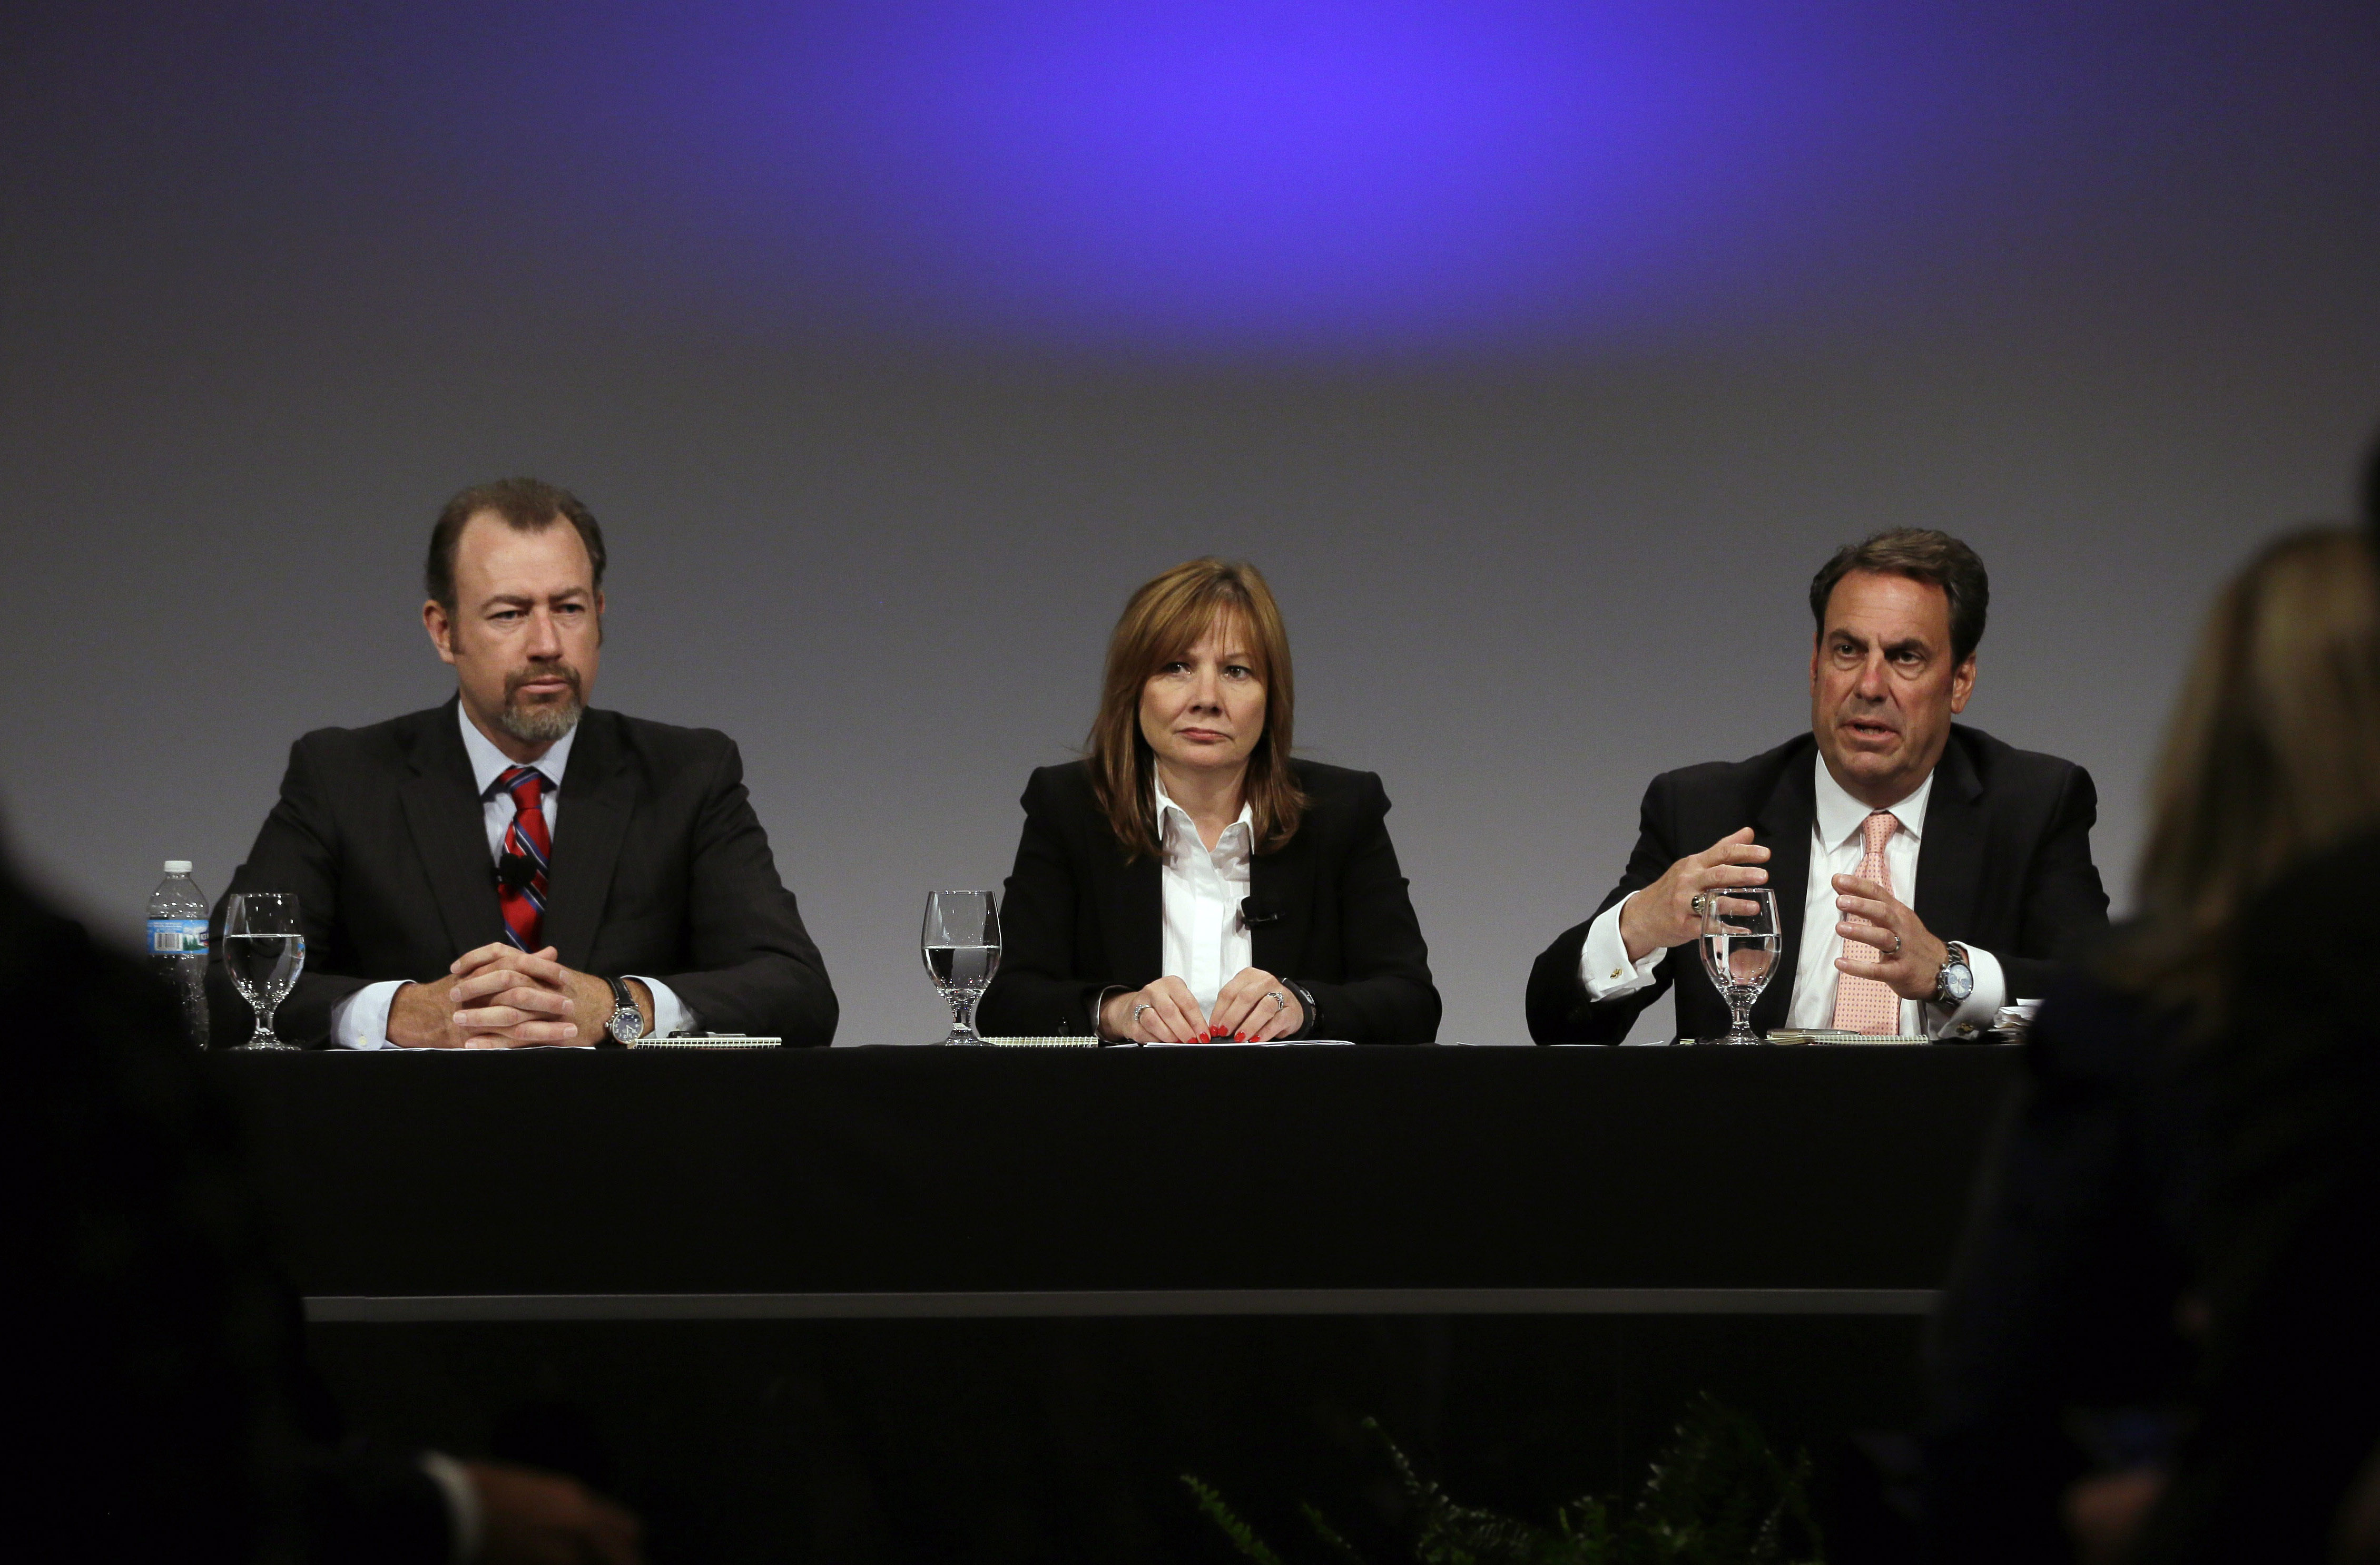 General Motors President Dan Ammann, left, CEO Mary Barra, and Executive Vice President Mark Reuss -Prosecutors' case against GM focuses on misleading statements